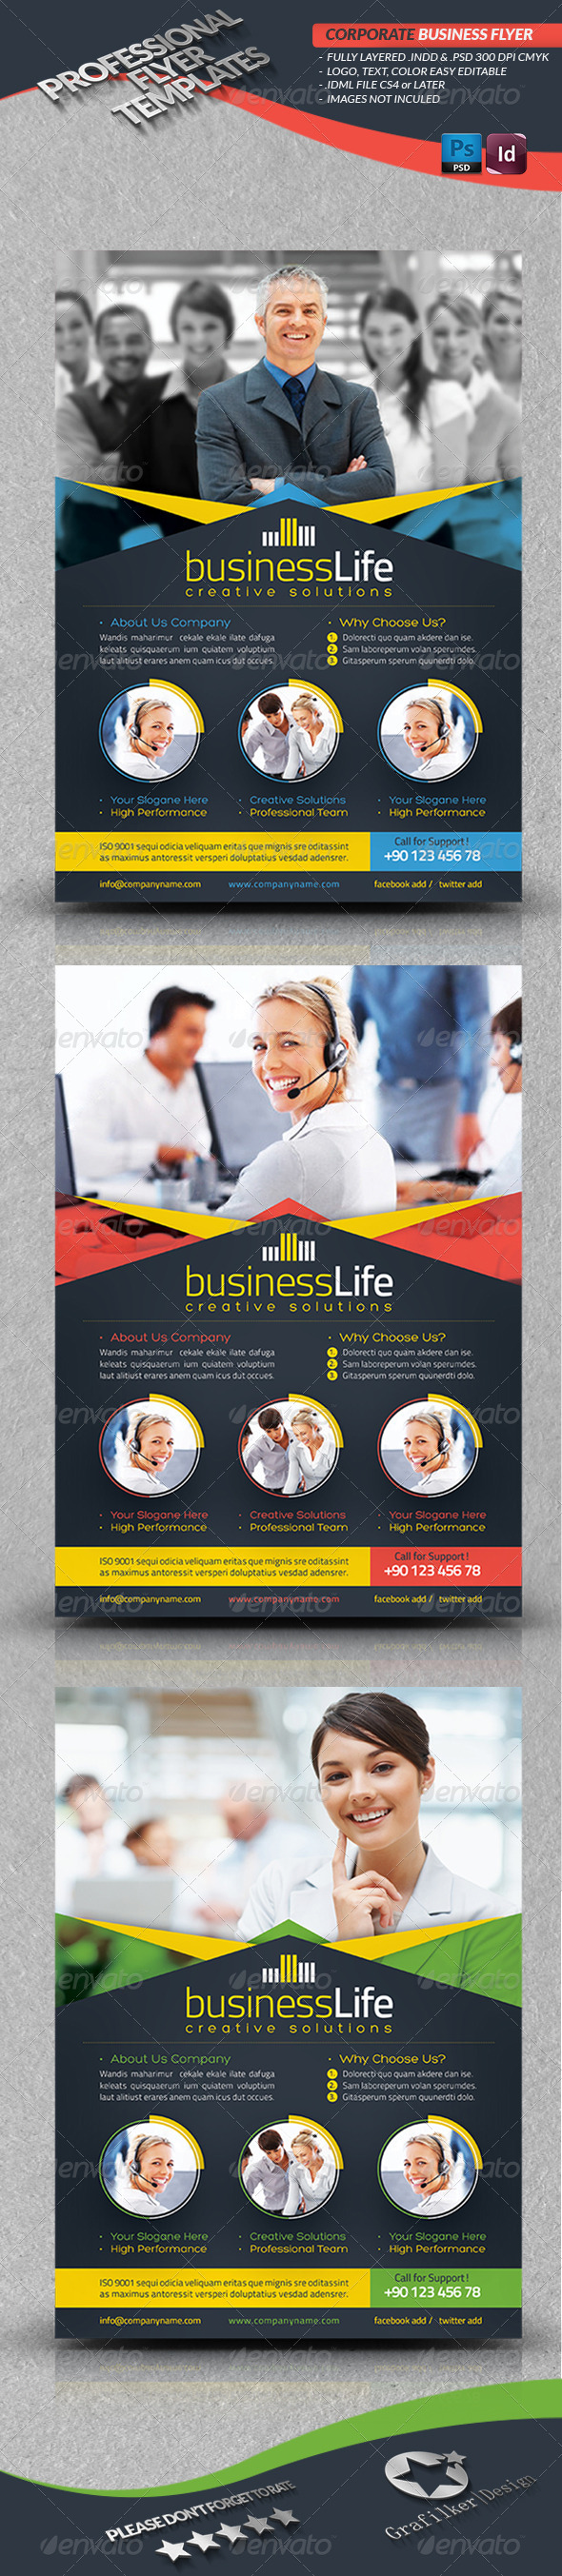 GraphicRiver Corporate Business Flyer 4050286